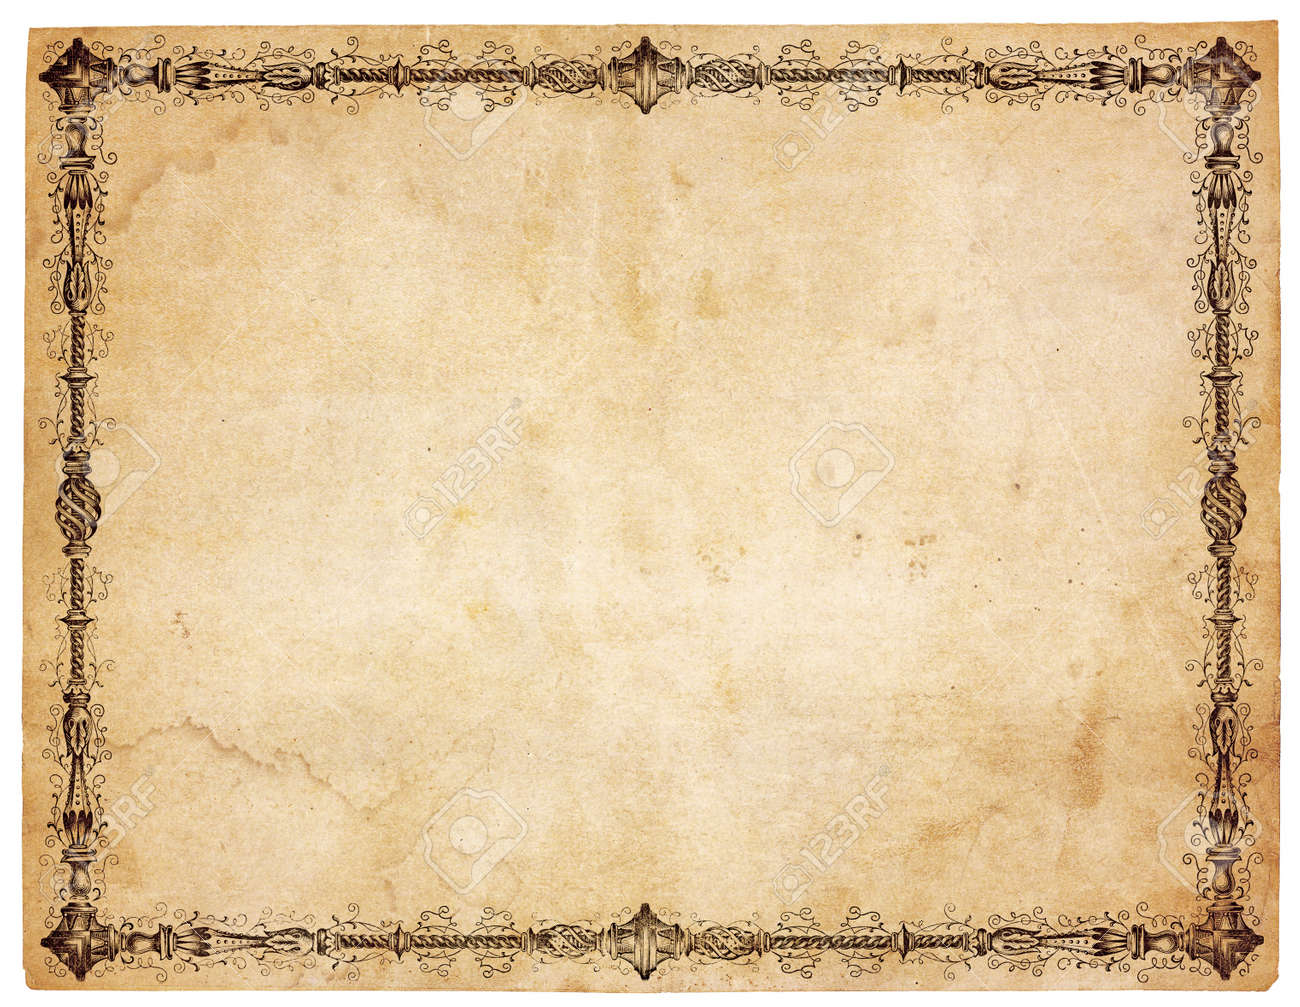 Aged, yellowing paper with stains and smudges. Blank except for very ornate victorian border. Isolated on white. Stock Photo - 9329873